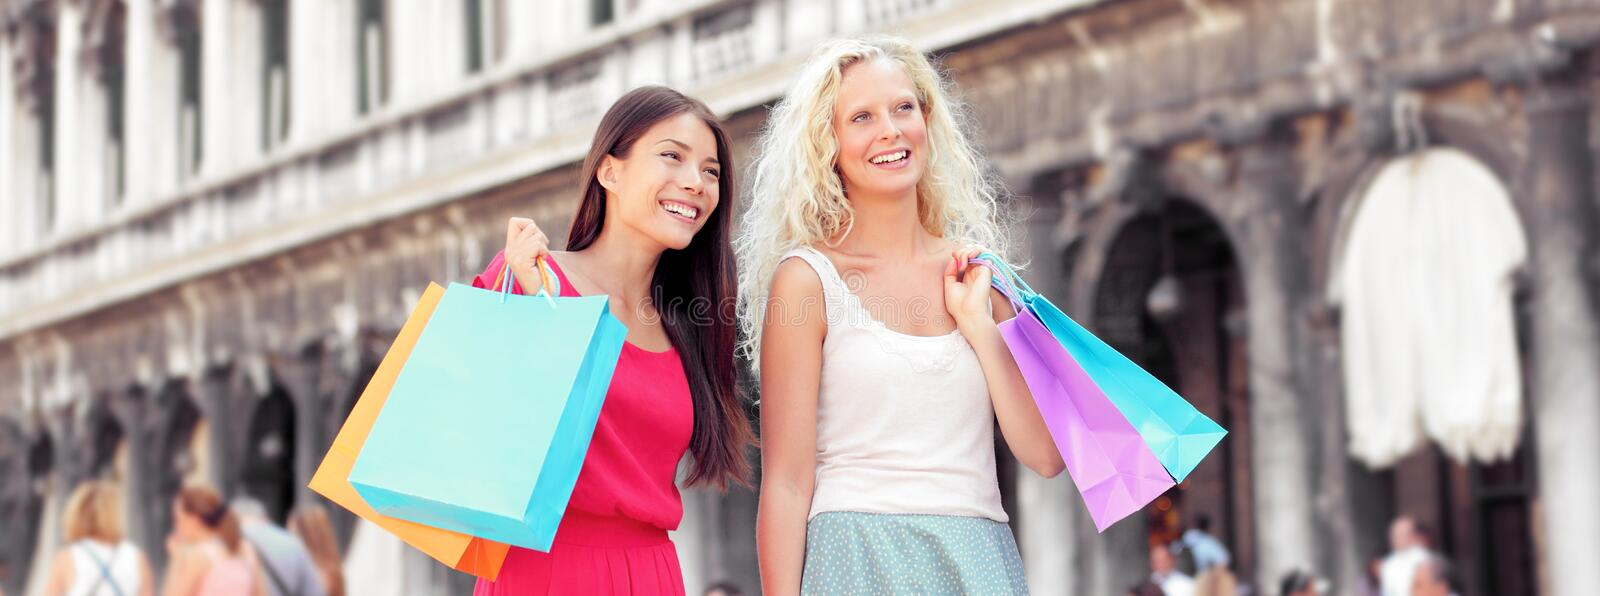 Shopping women banner with bags, Venice stock images